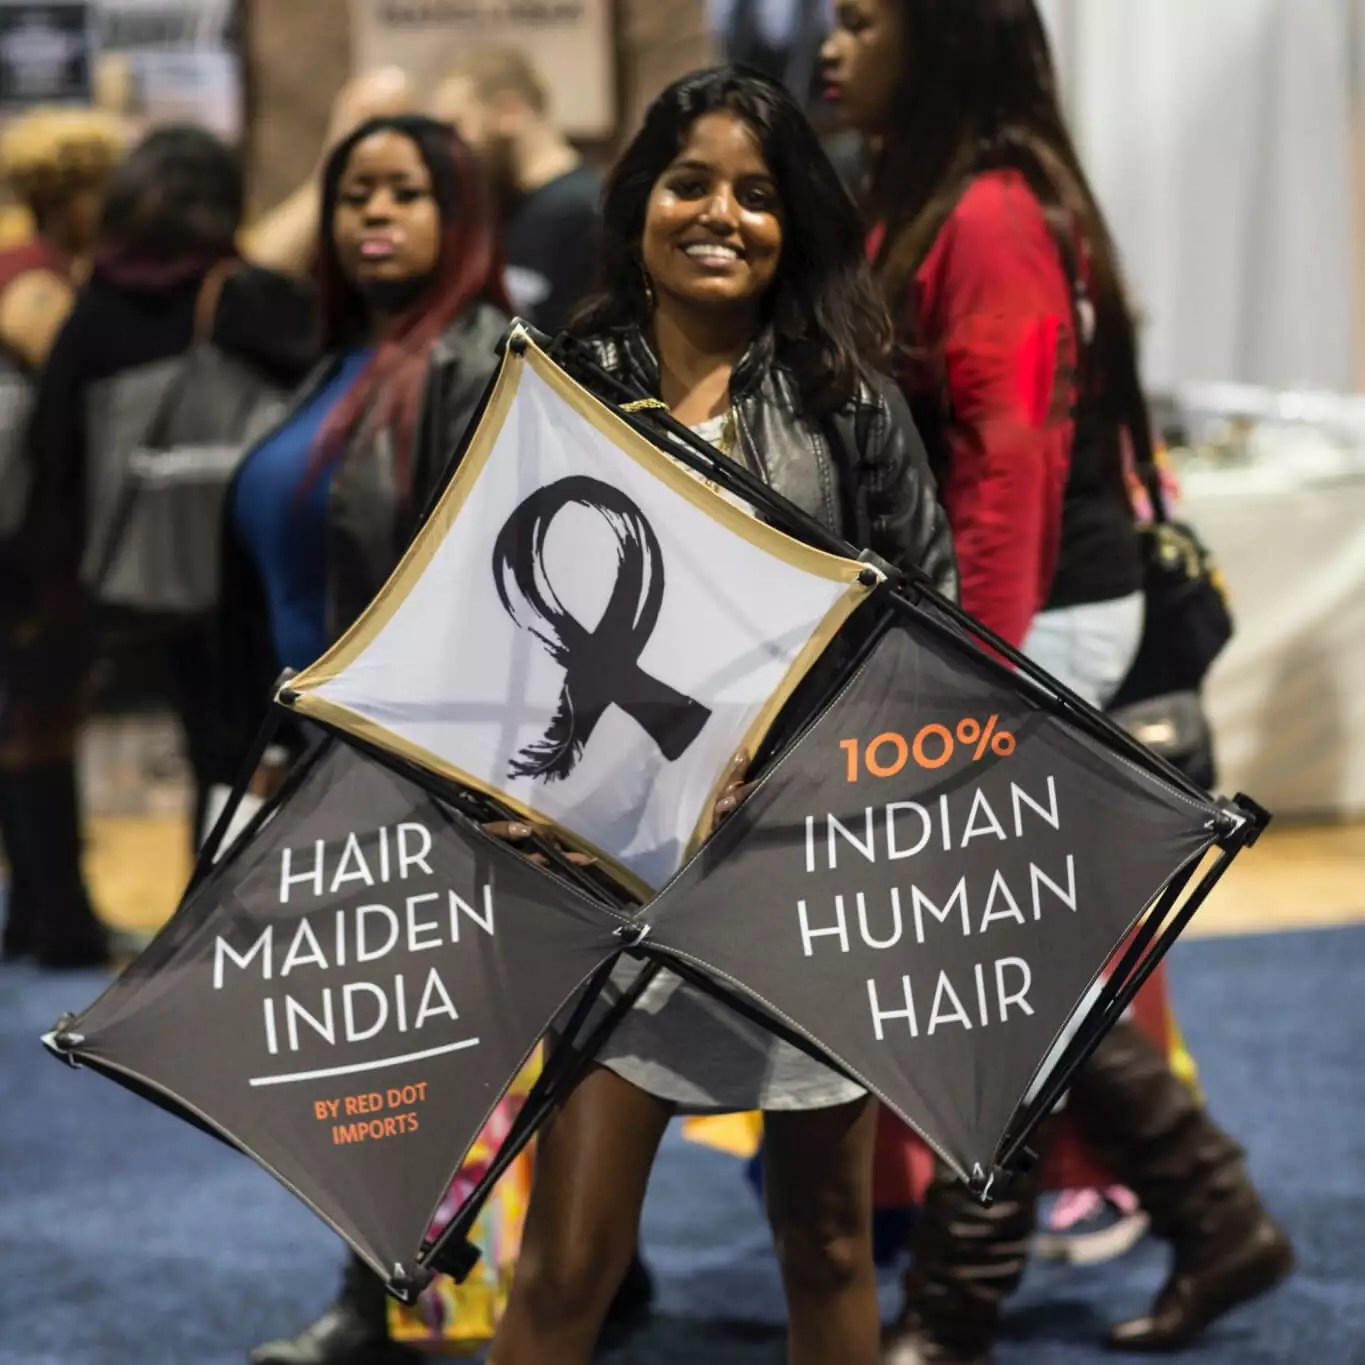 Hair Maiden India offers raw Indian Hair from our hair factory in India